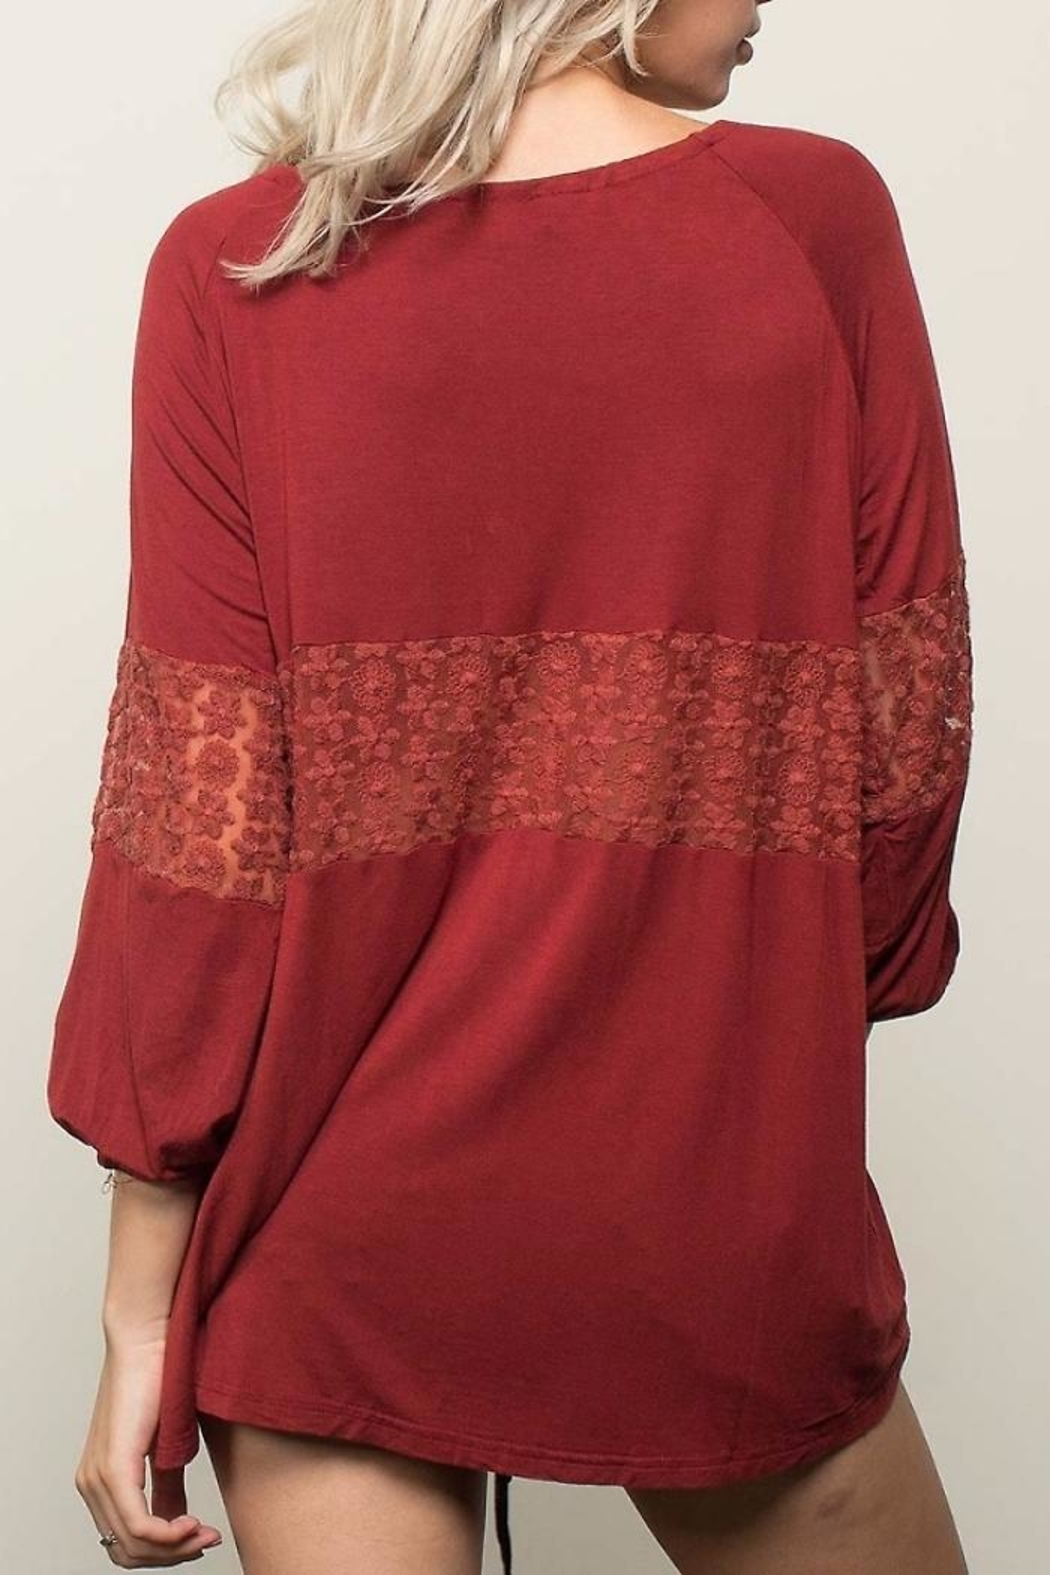 People Outfitter Retro Romance Top - Side Cropped Image